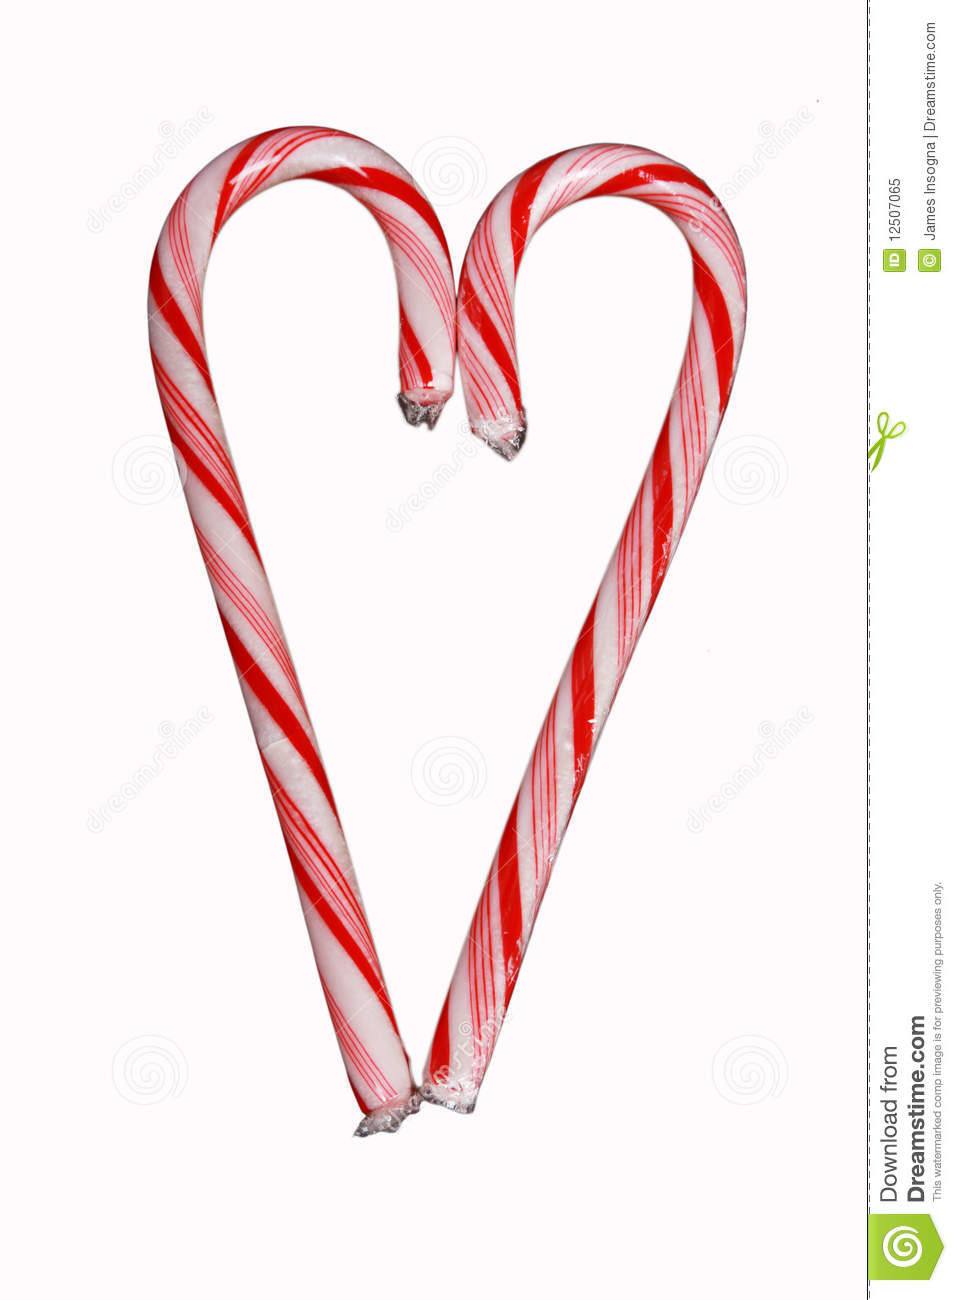 Candy cane heart isolated on white stock image